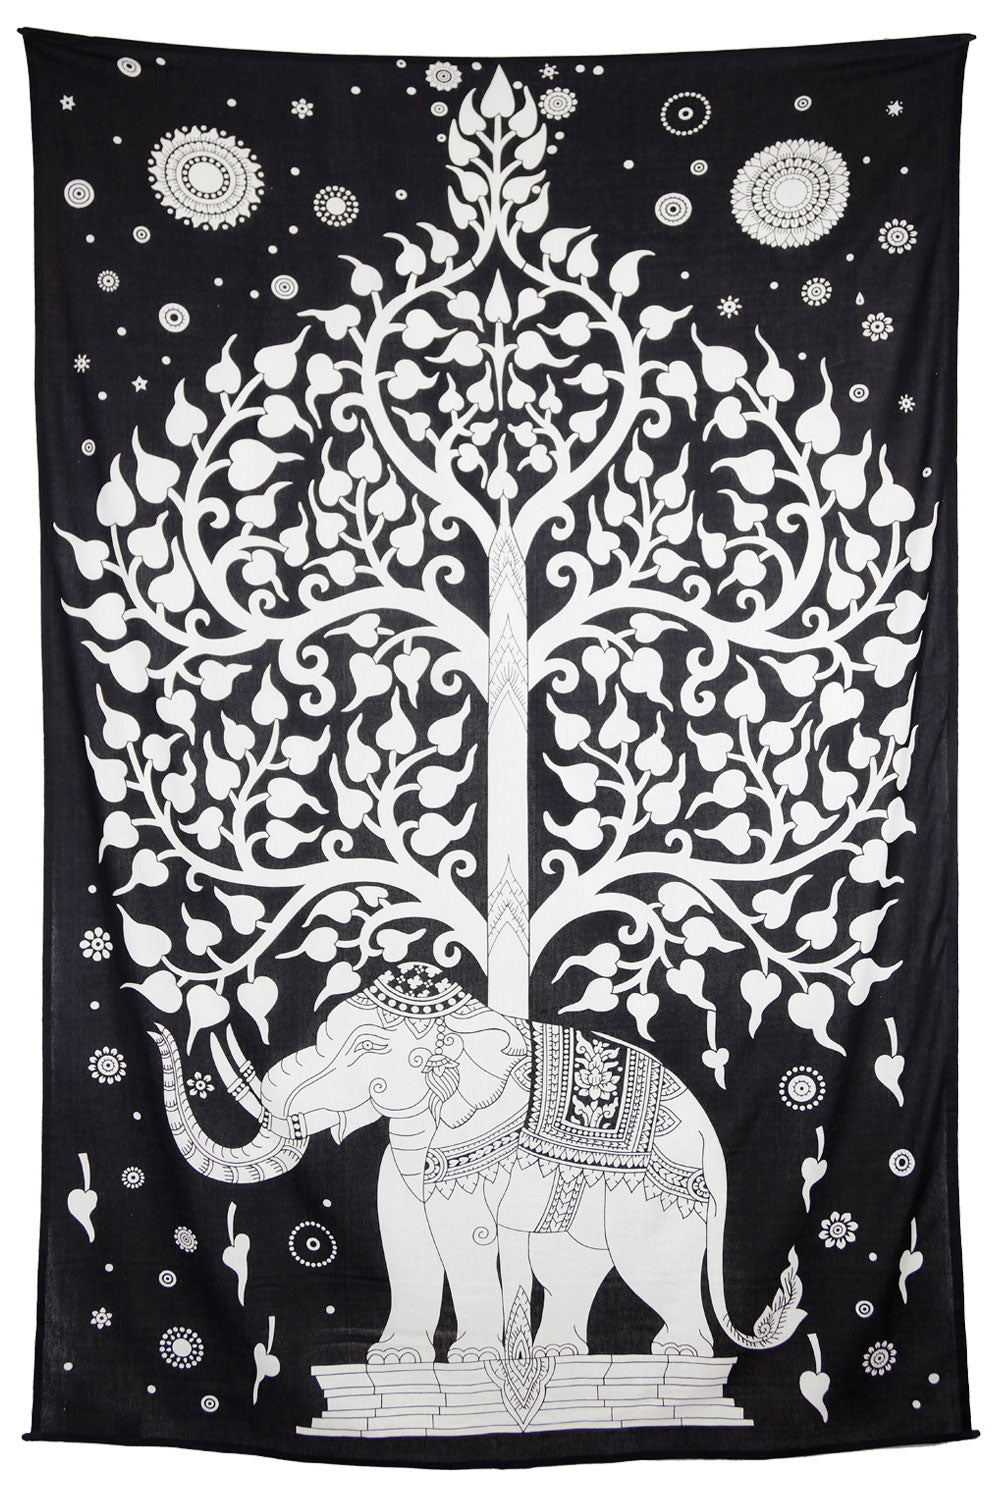 Elephant Tree Blk/Wht Tapestry